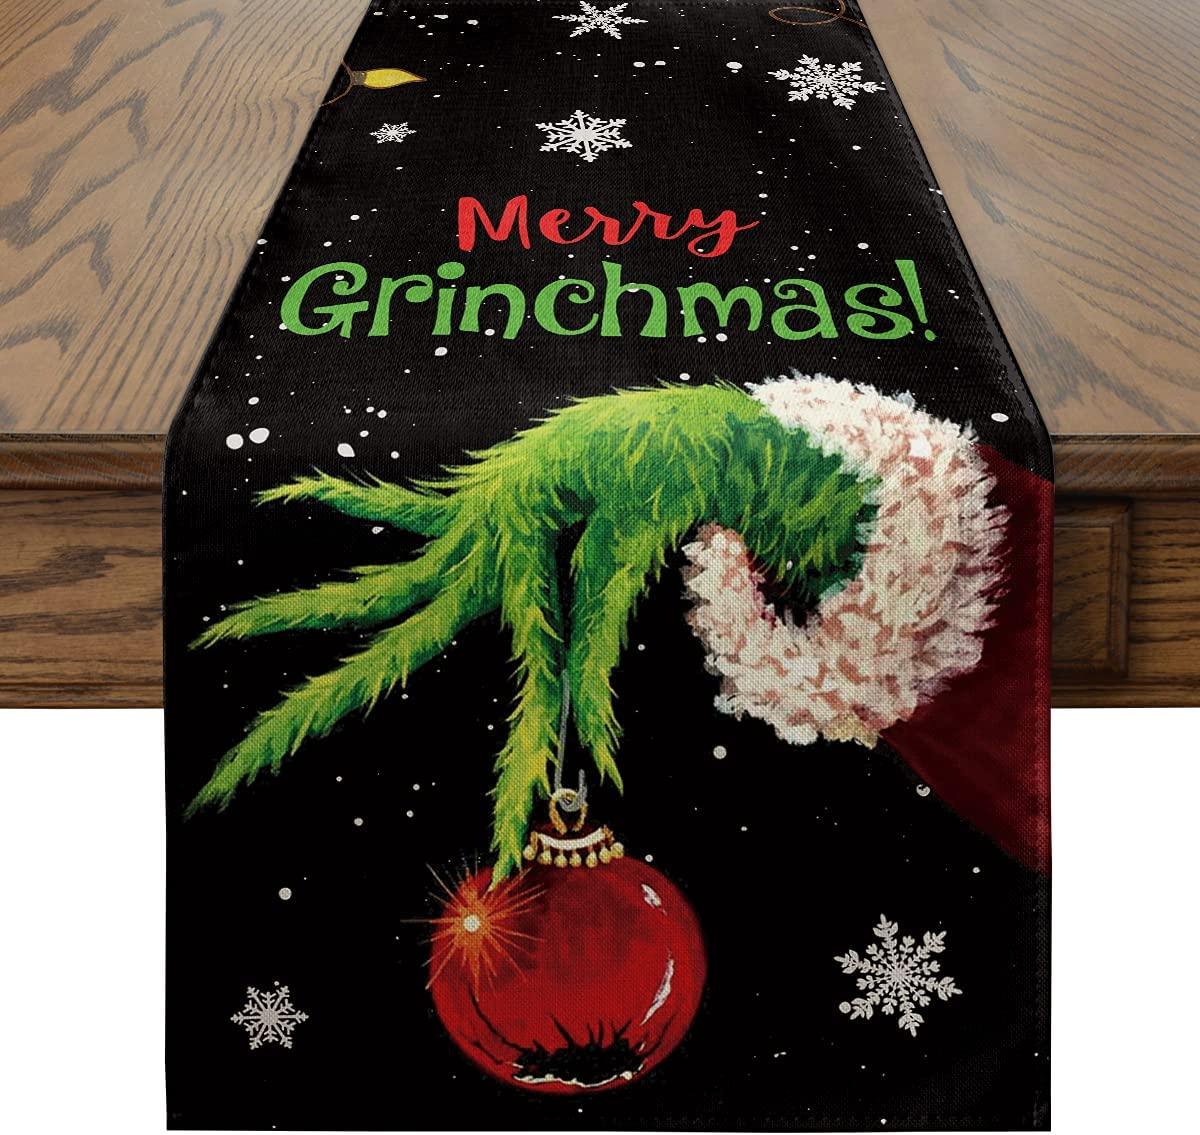 Artoid Mode Merry Grinchmas Christmas Table Runner Black, Seasonal Winter Xmas Holiday Kitchen Dining Table Decoration for Indoor Outdoor Home Party Decor 13 x 72 Inch